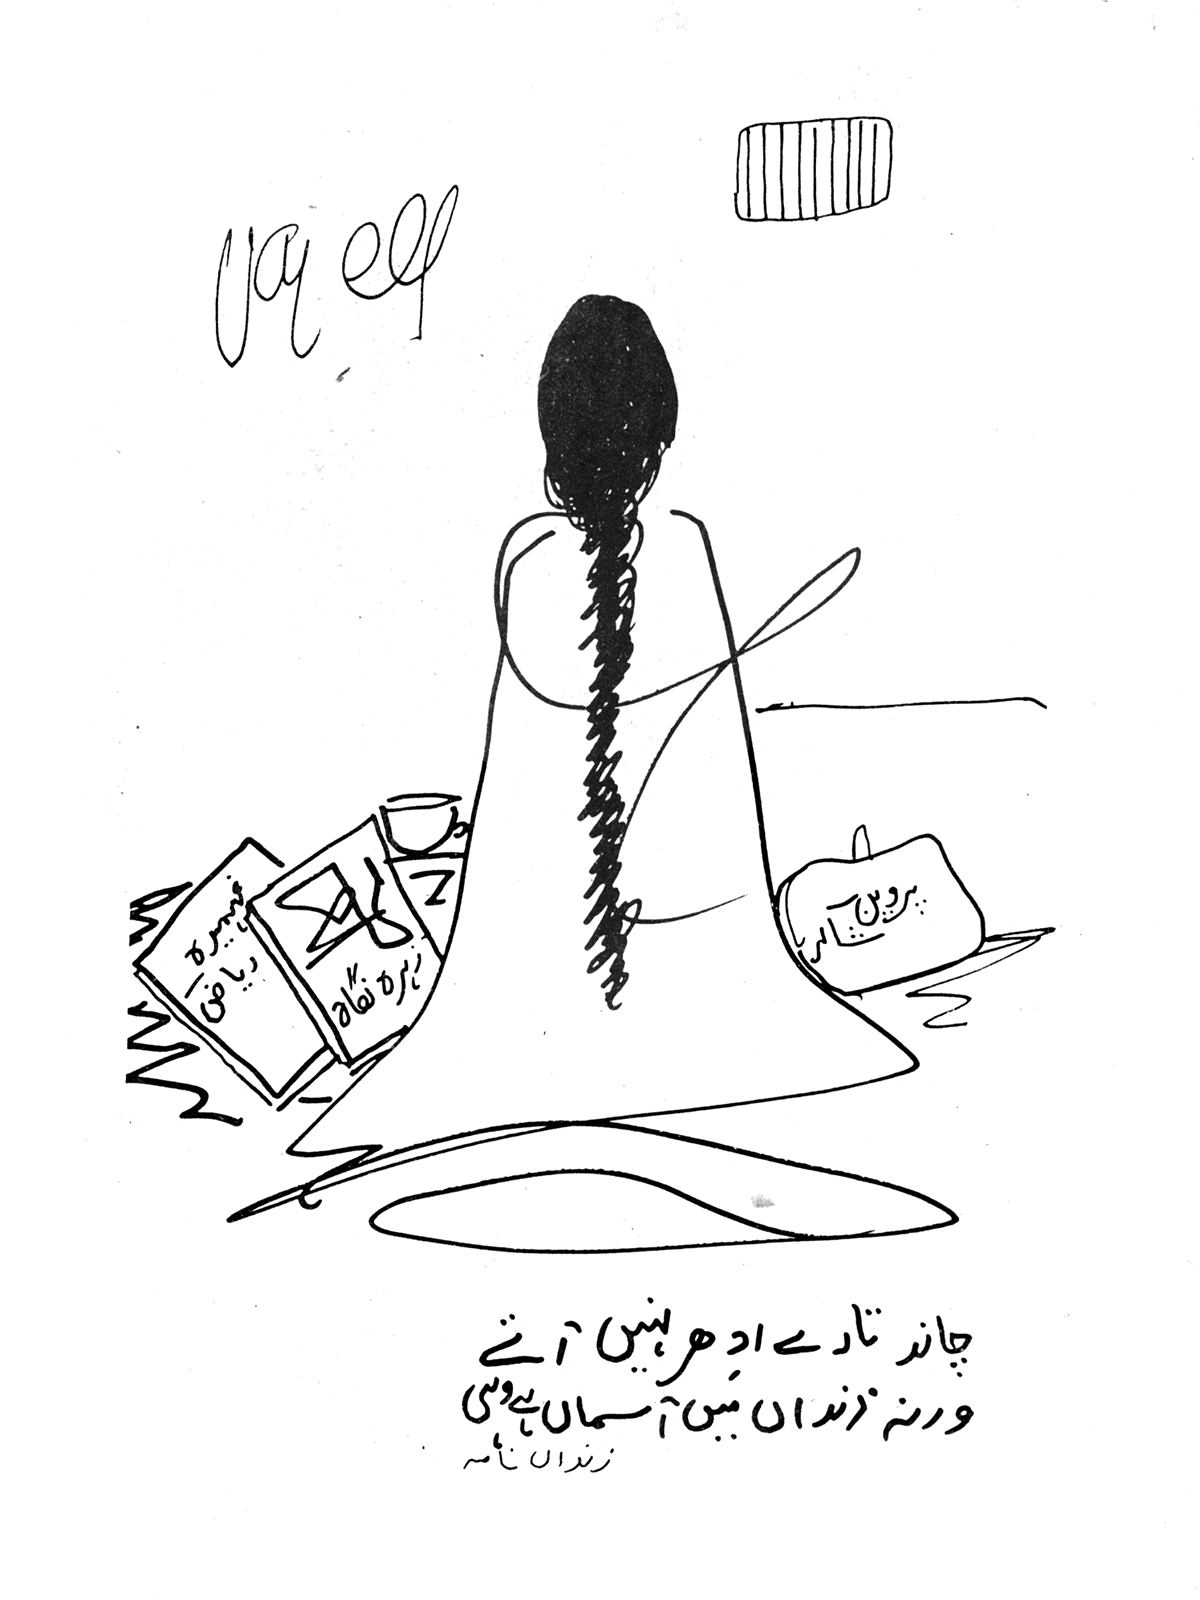 Taken from a compilation of Vai Ell's illustrations of Faiz's poetry, 1987